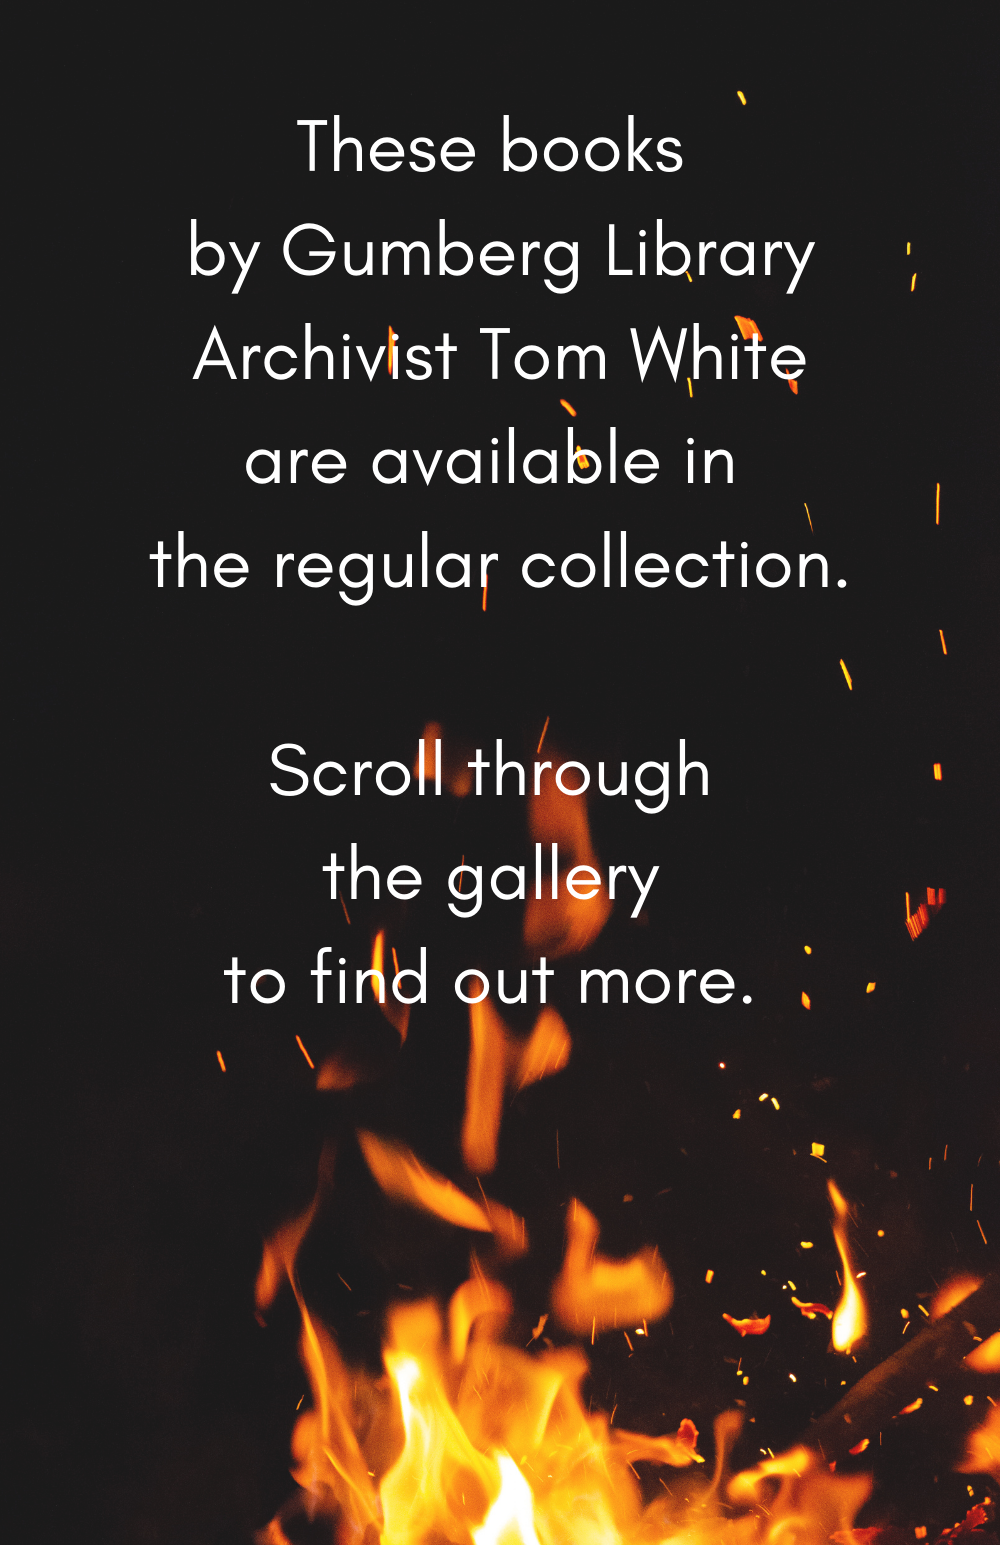 A picture of a campfire. The text reads These books by Gumberg Library Archivist Tom White are available in the regular collection. Scroll through the gallery to find out more.